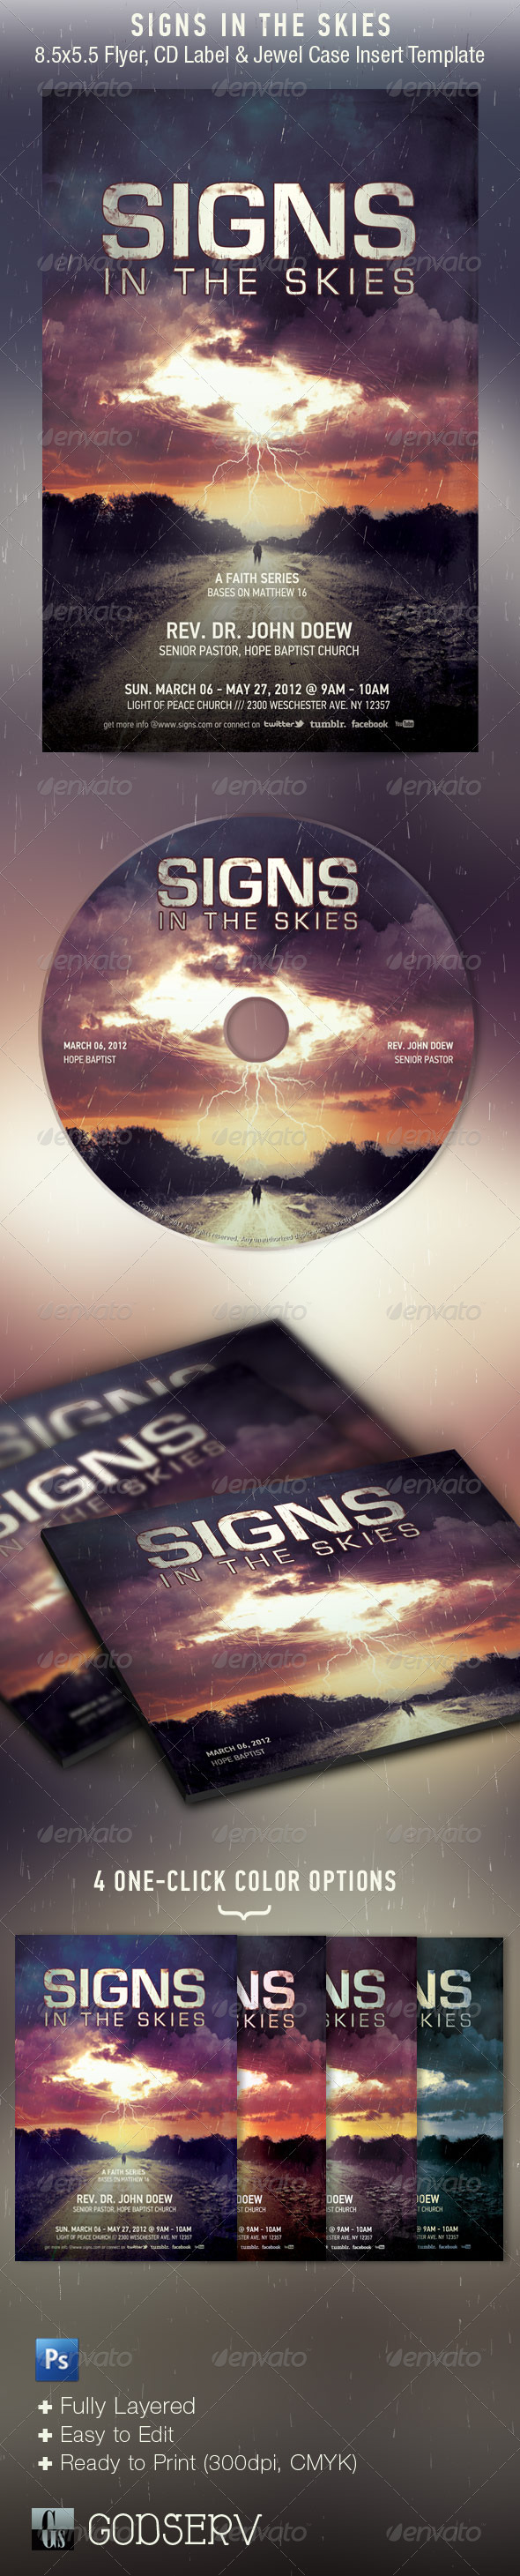 Signs In The Skies Church Flyer, and CD Template - Church Flyers